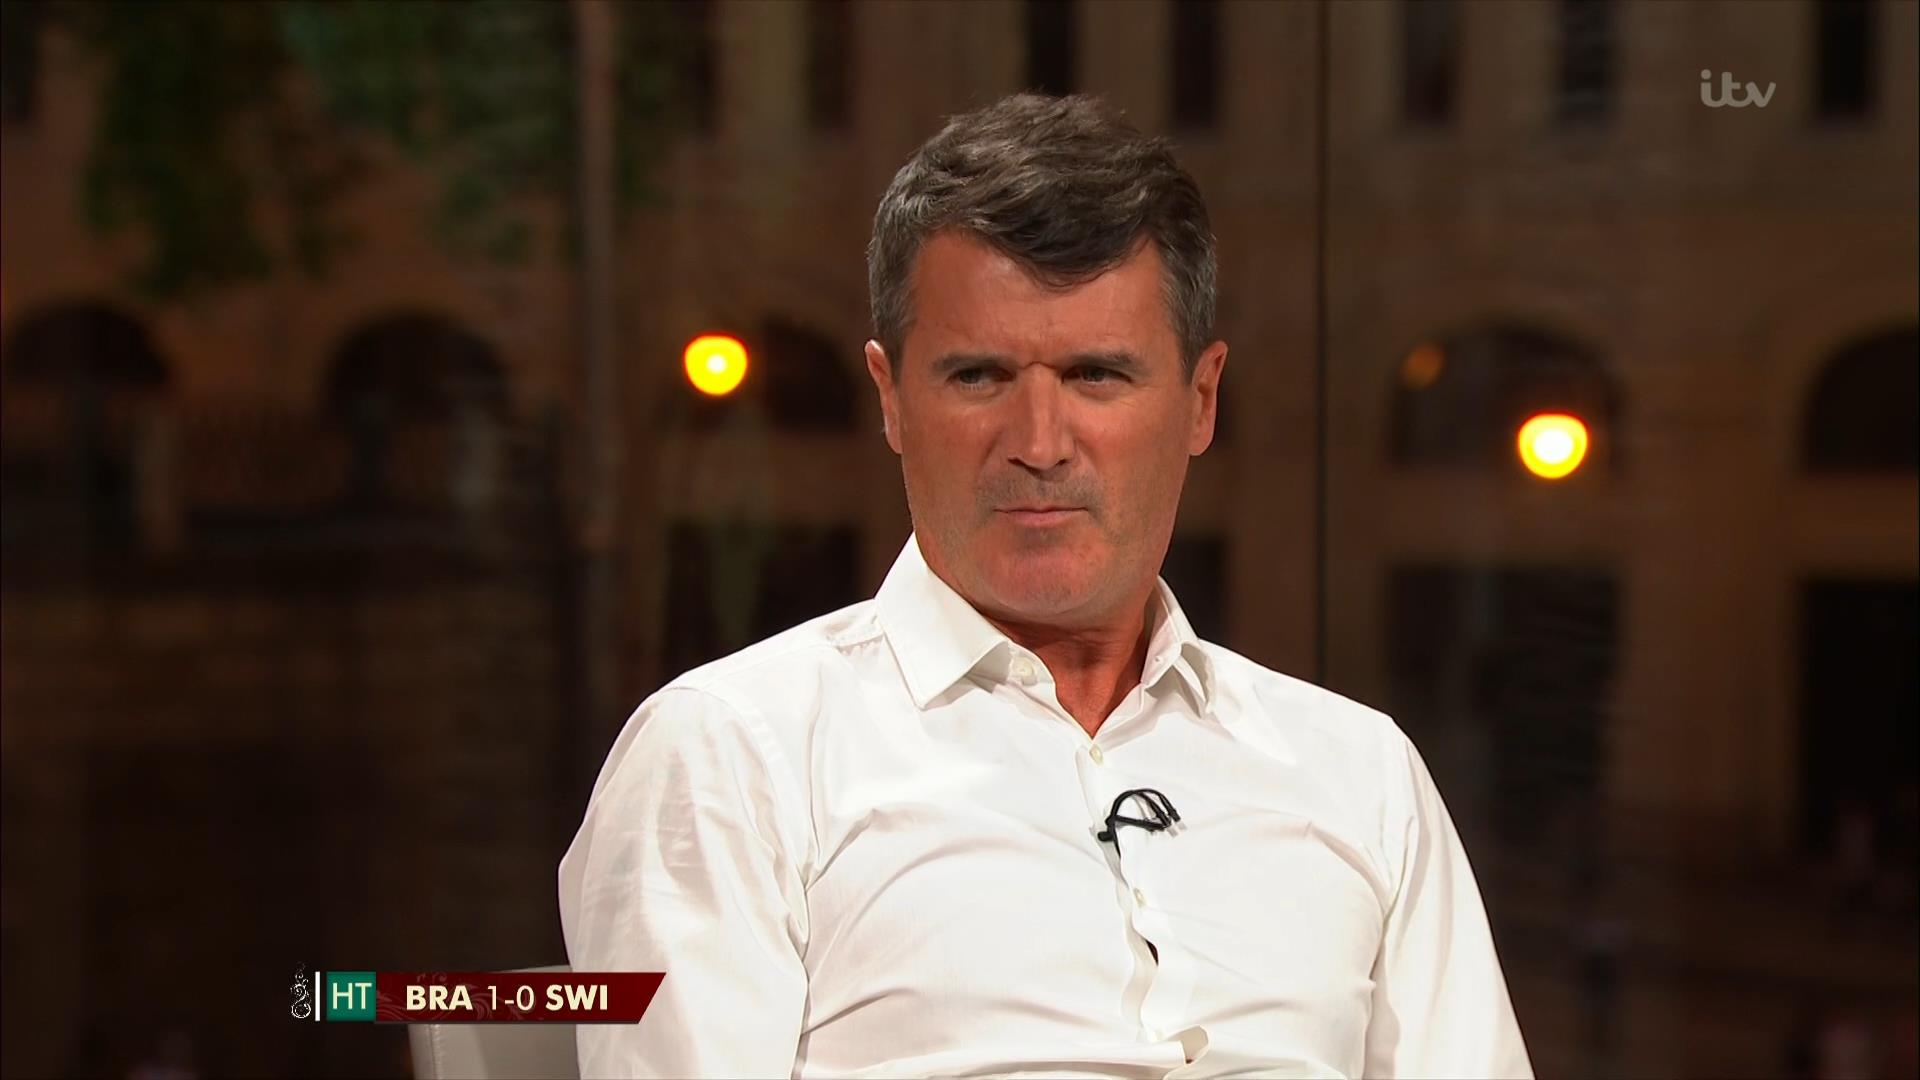 Roy Keane - World Cup 2018 ITV (1)